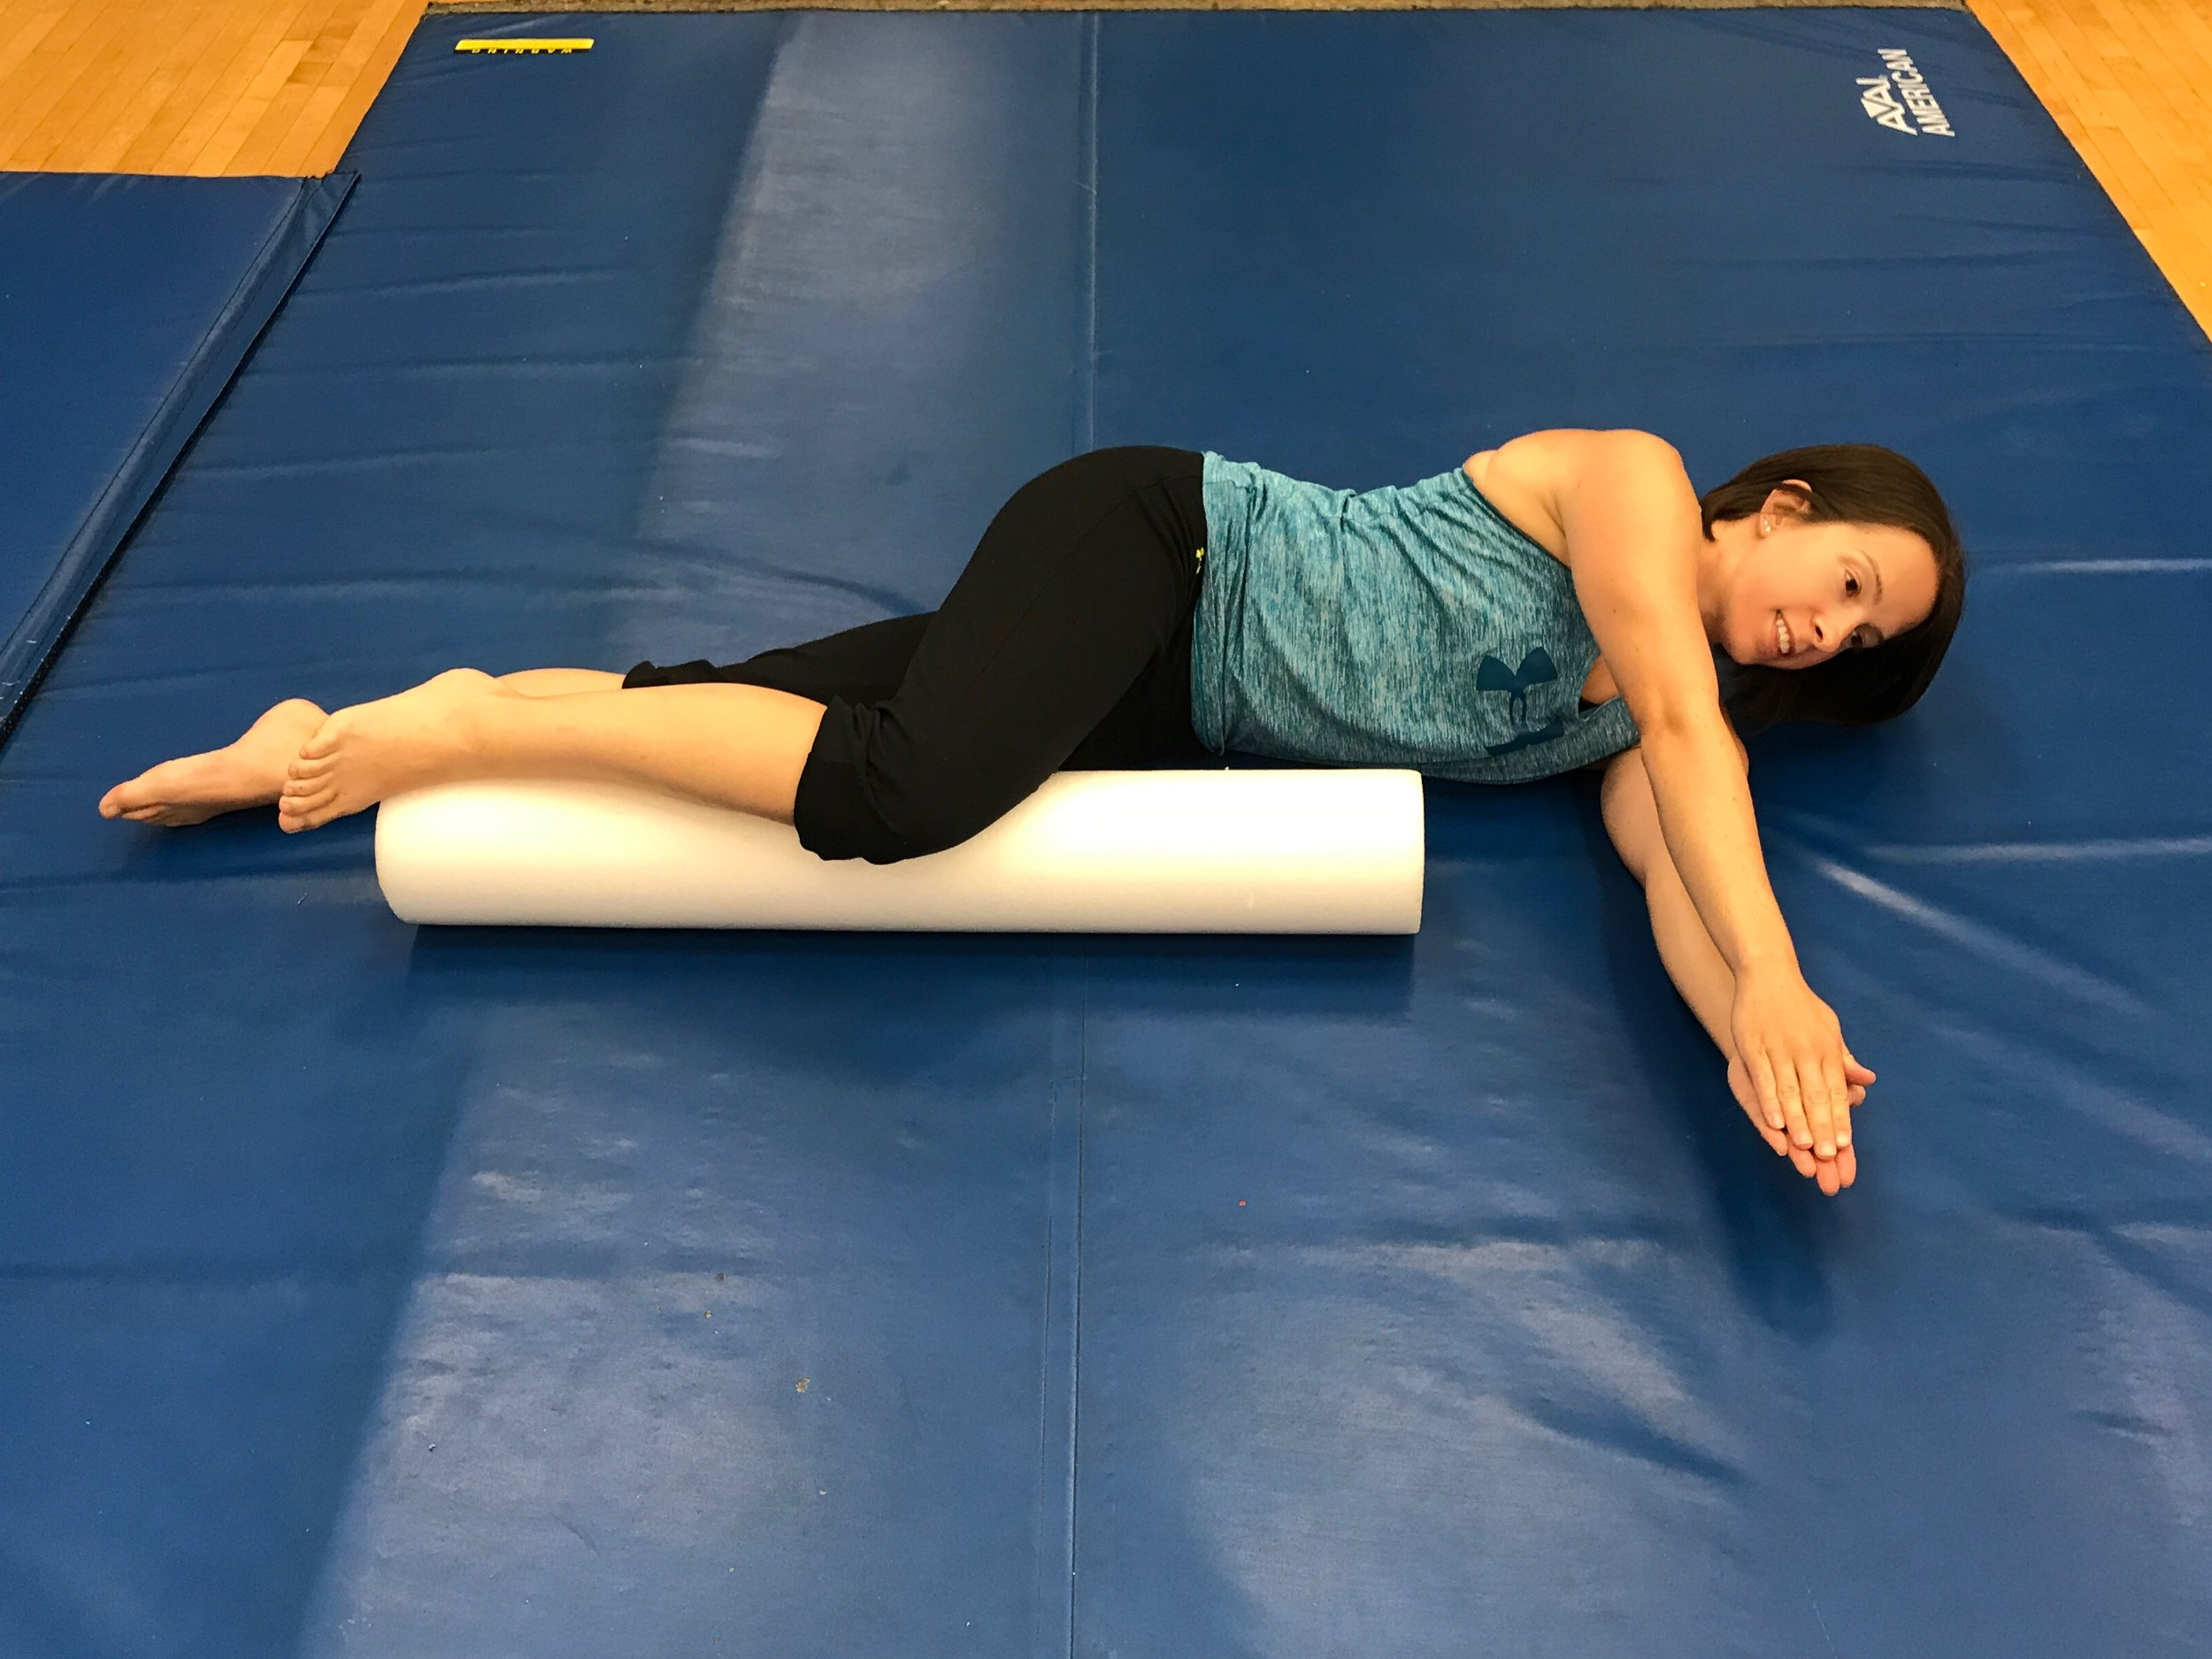 Starting position: Begin on your side with a foam roll under the top knee as shown. With the arms together, extend them out directly in front of you.